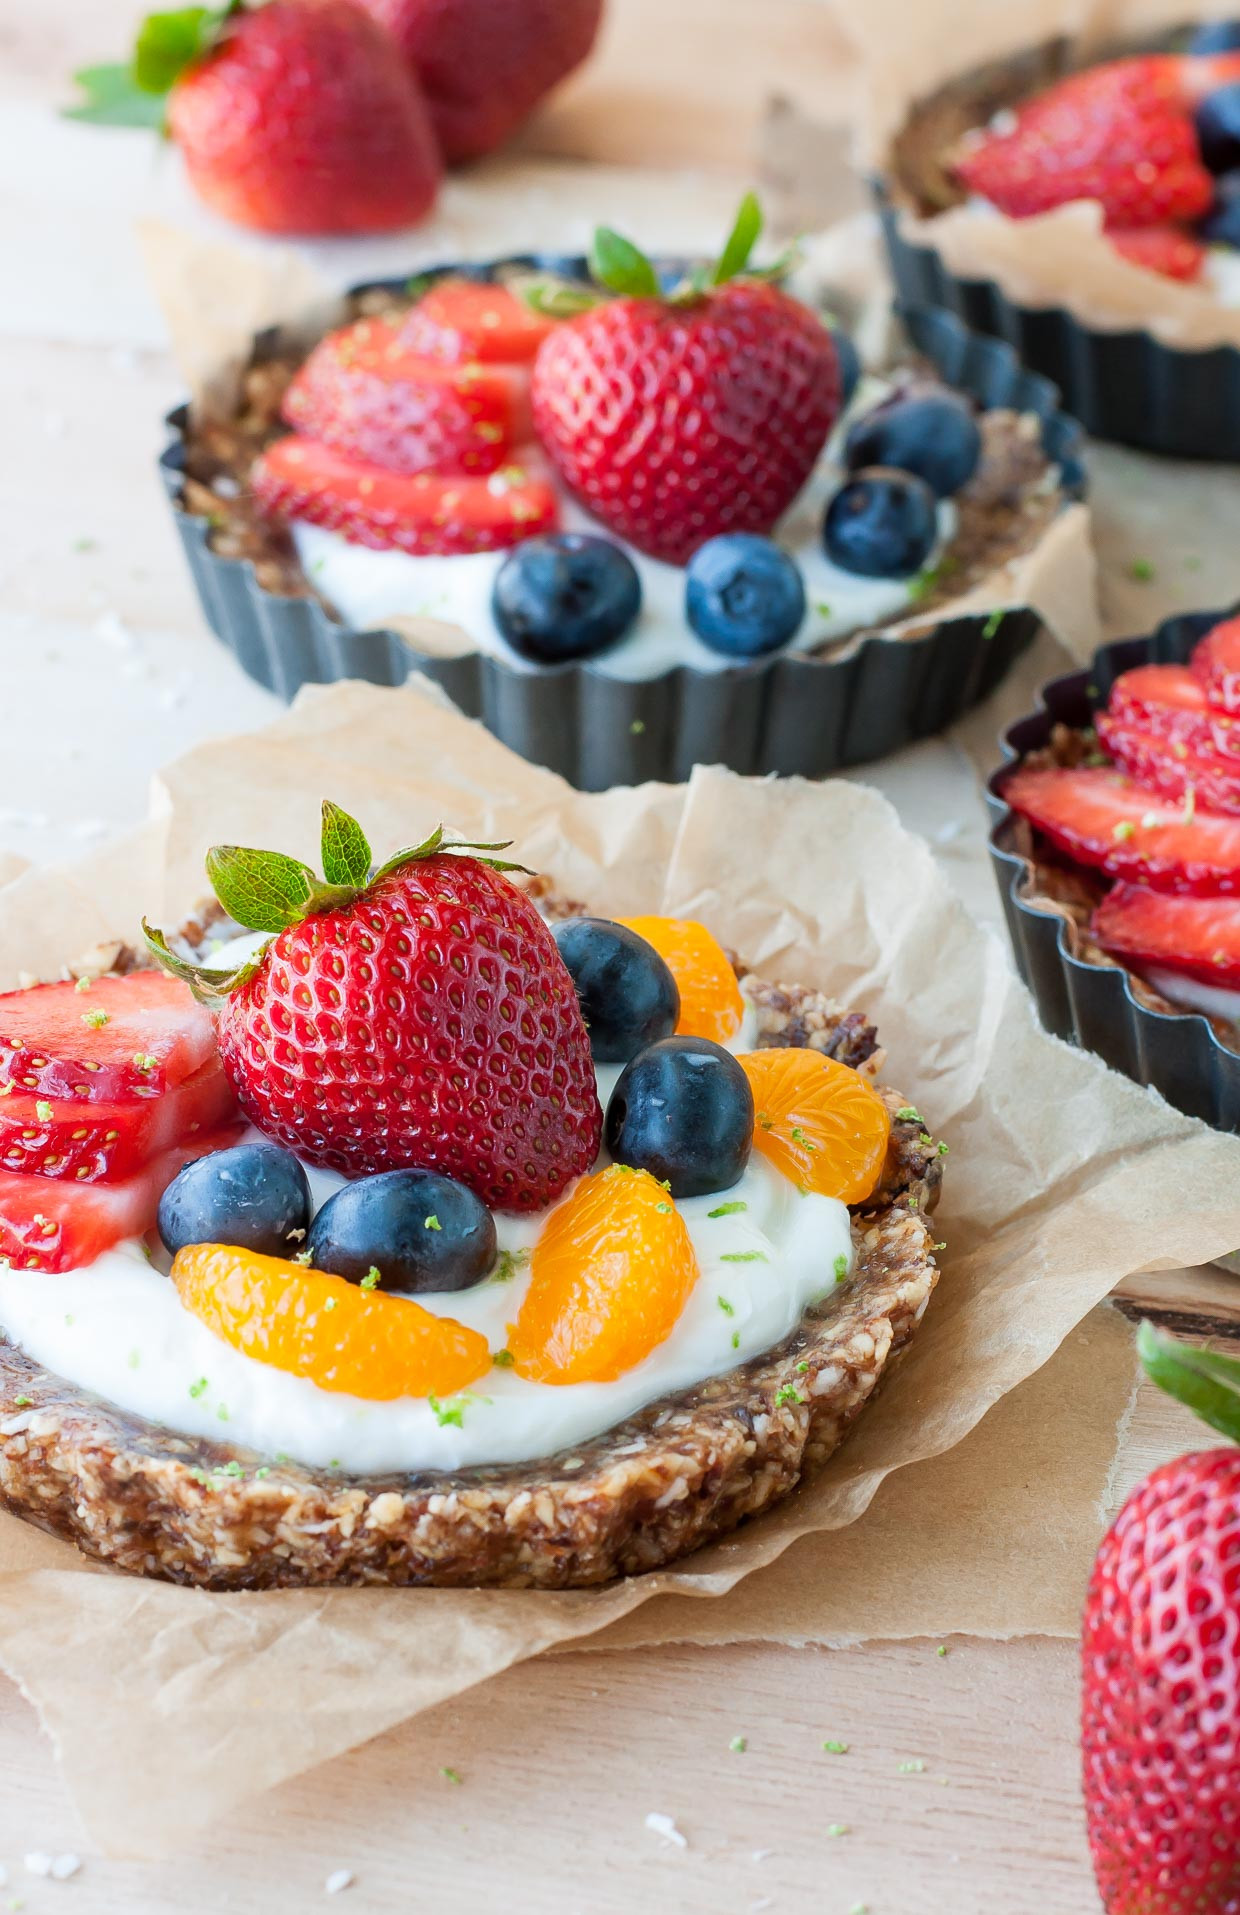 Healthy Fruit Desserts  Healthy No Bake Coconut Lime Fruit and Yogurt Tarts Peas